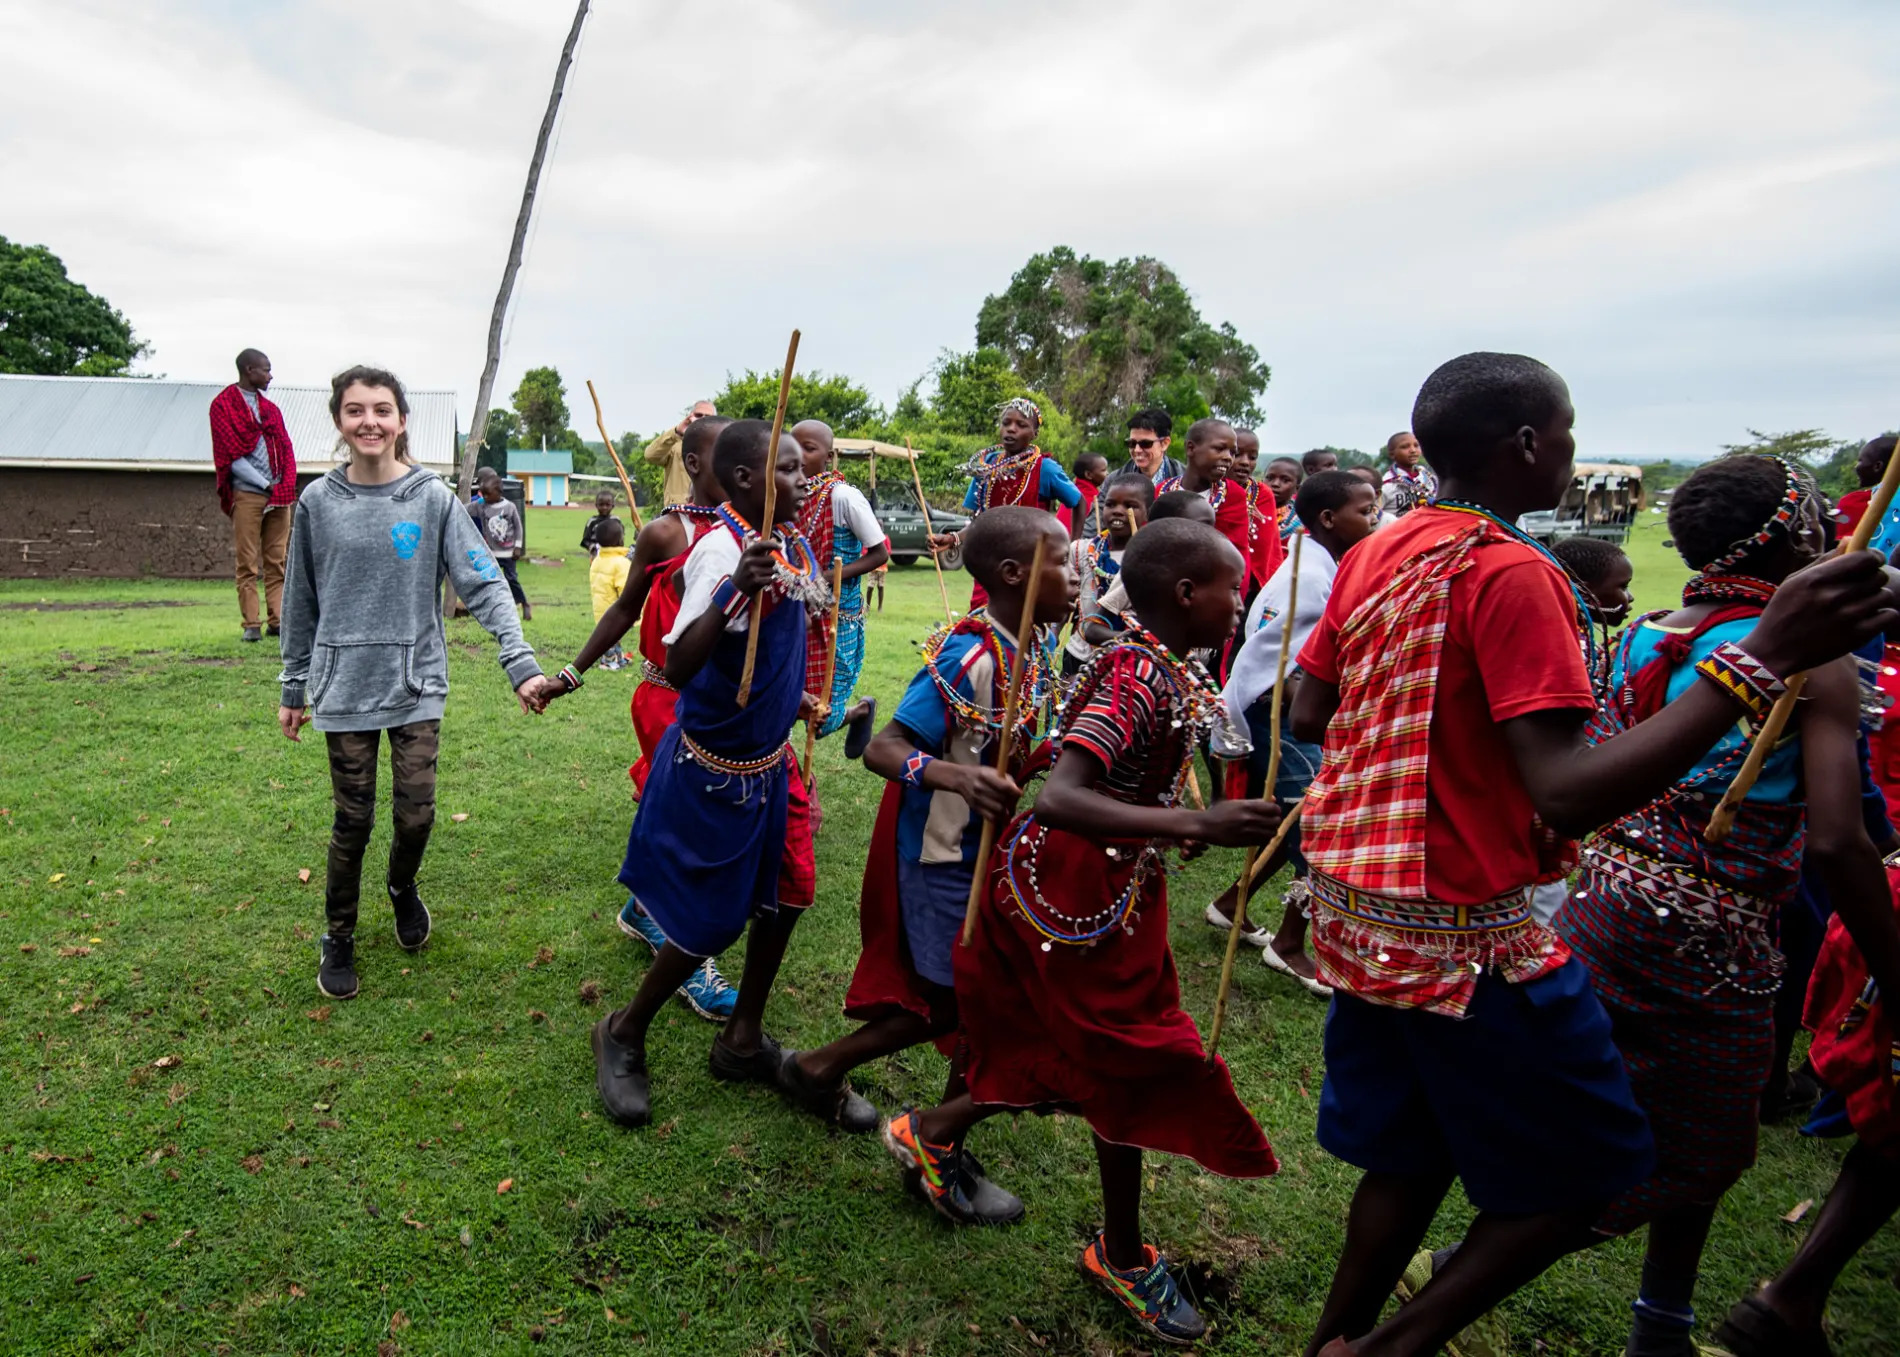 Dancing with the village children